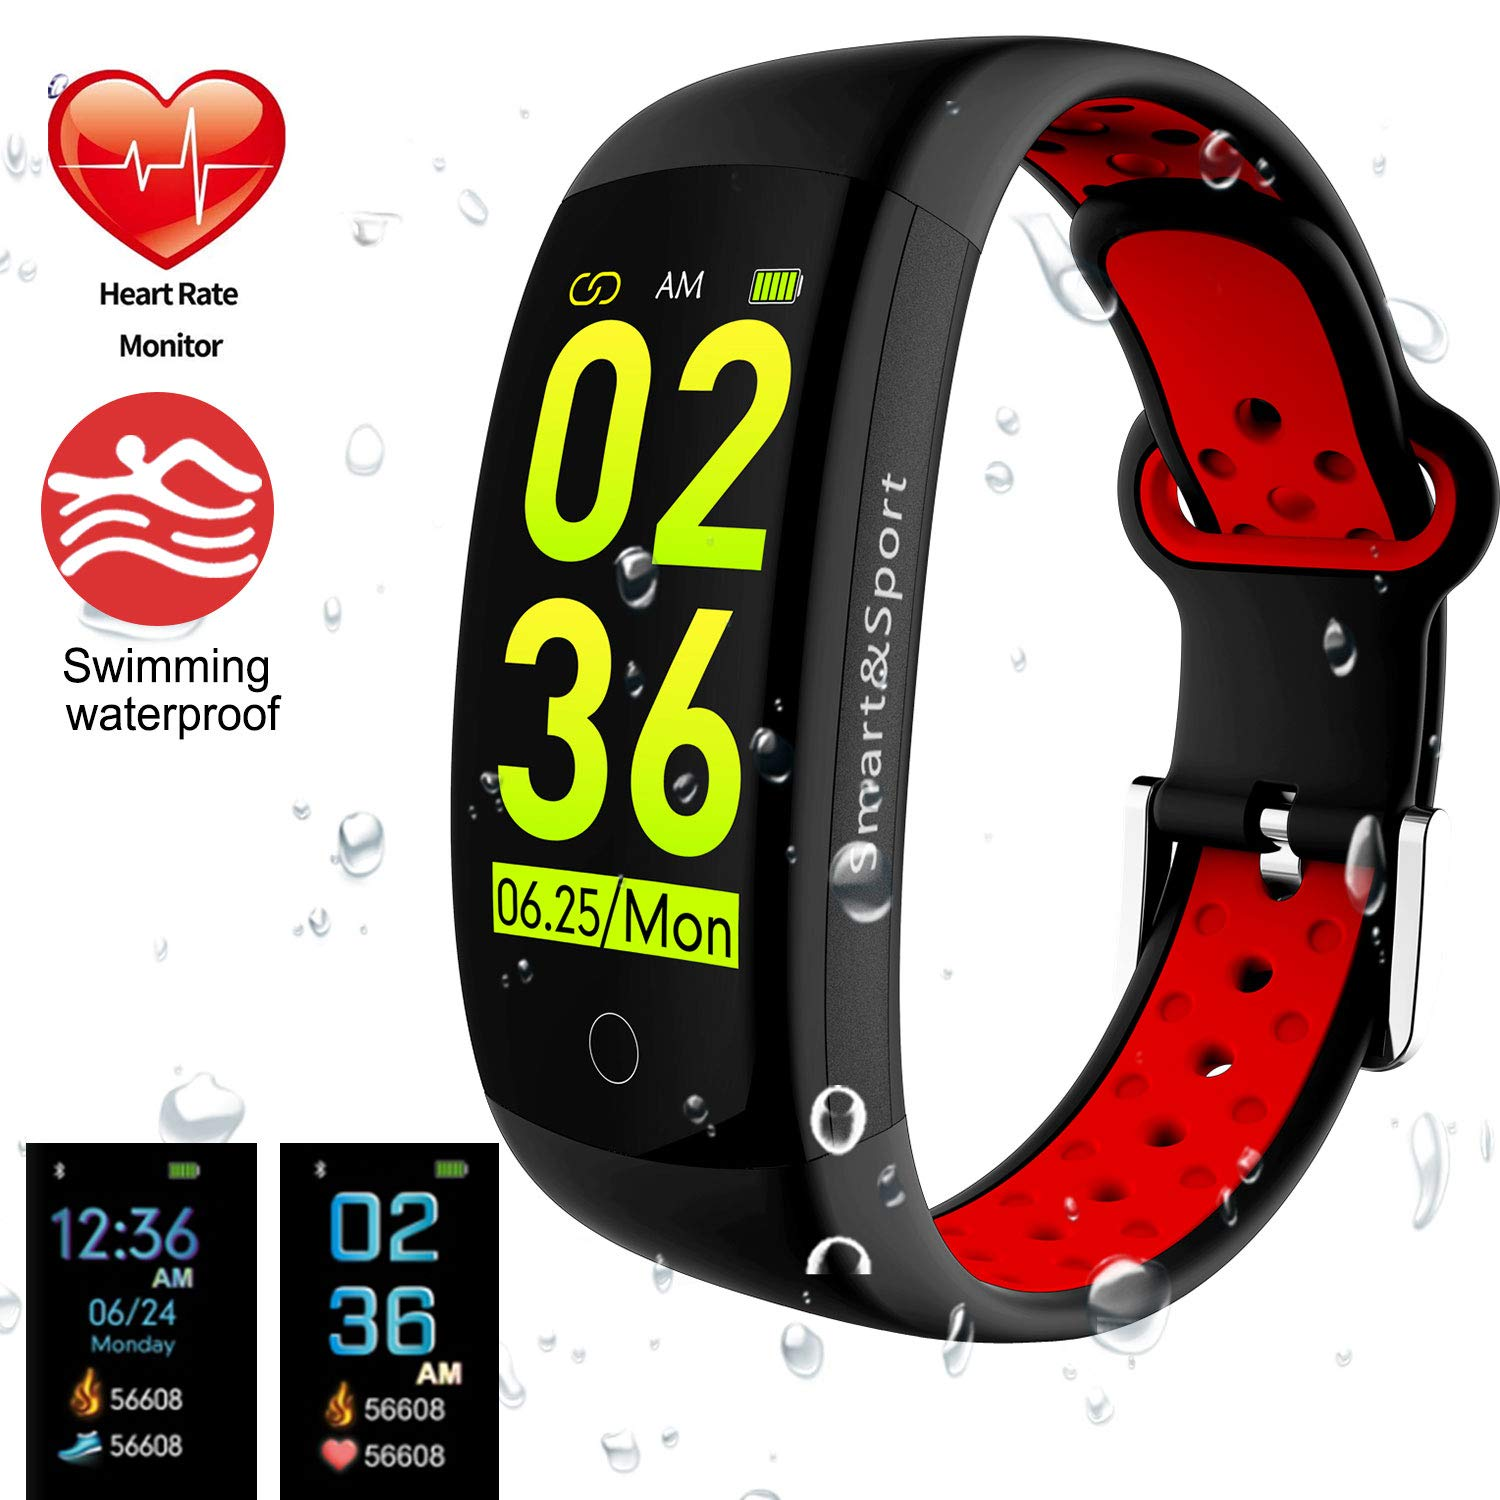 Black+Red feifuns Fitness Tracker Watch, Smart Bracelet IP68 Waterproof Swim Watch Activity Tracker with Heart Rate Monitor Step Calories Counter Sleep Pedometer Watch for Men Women Kids Android iOS